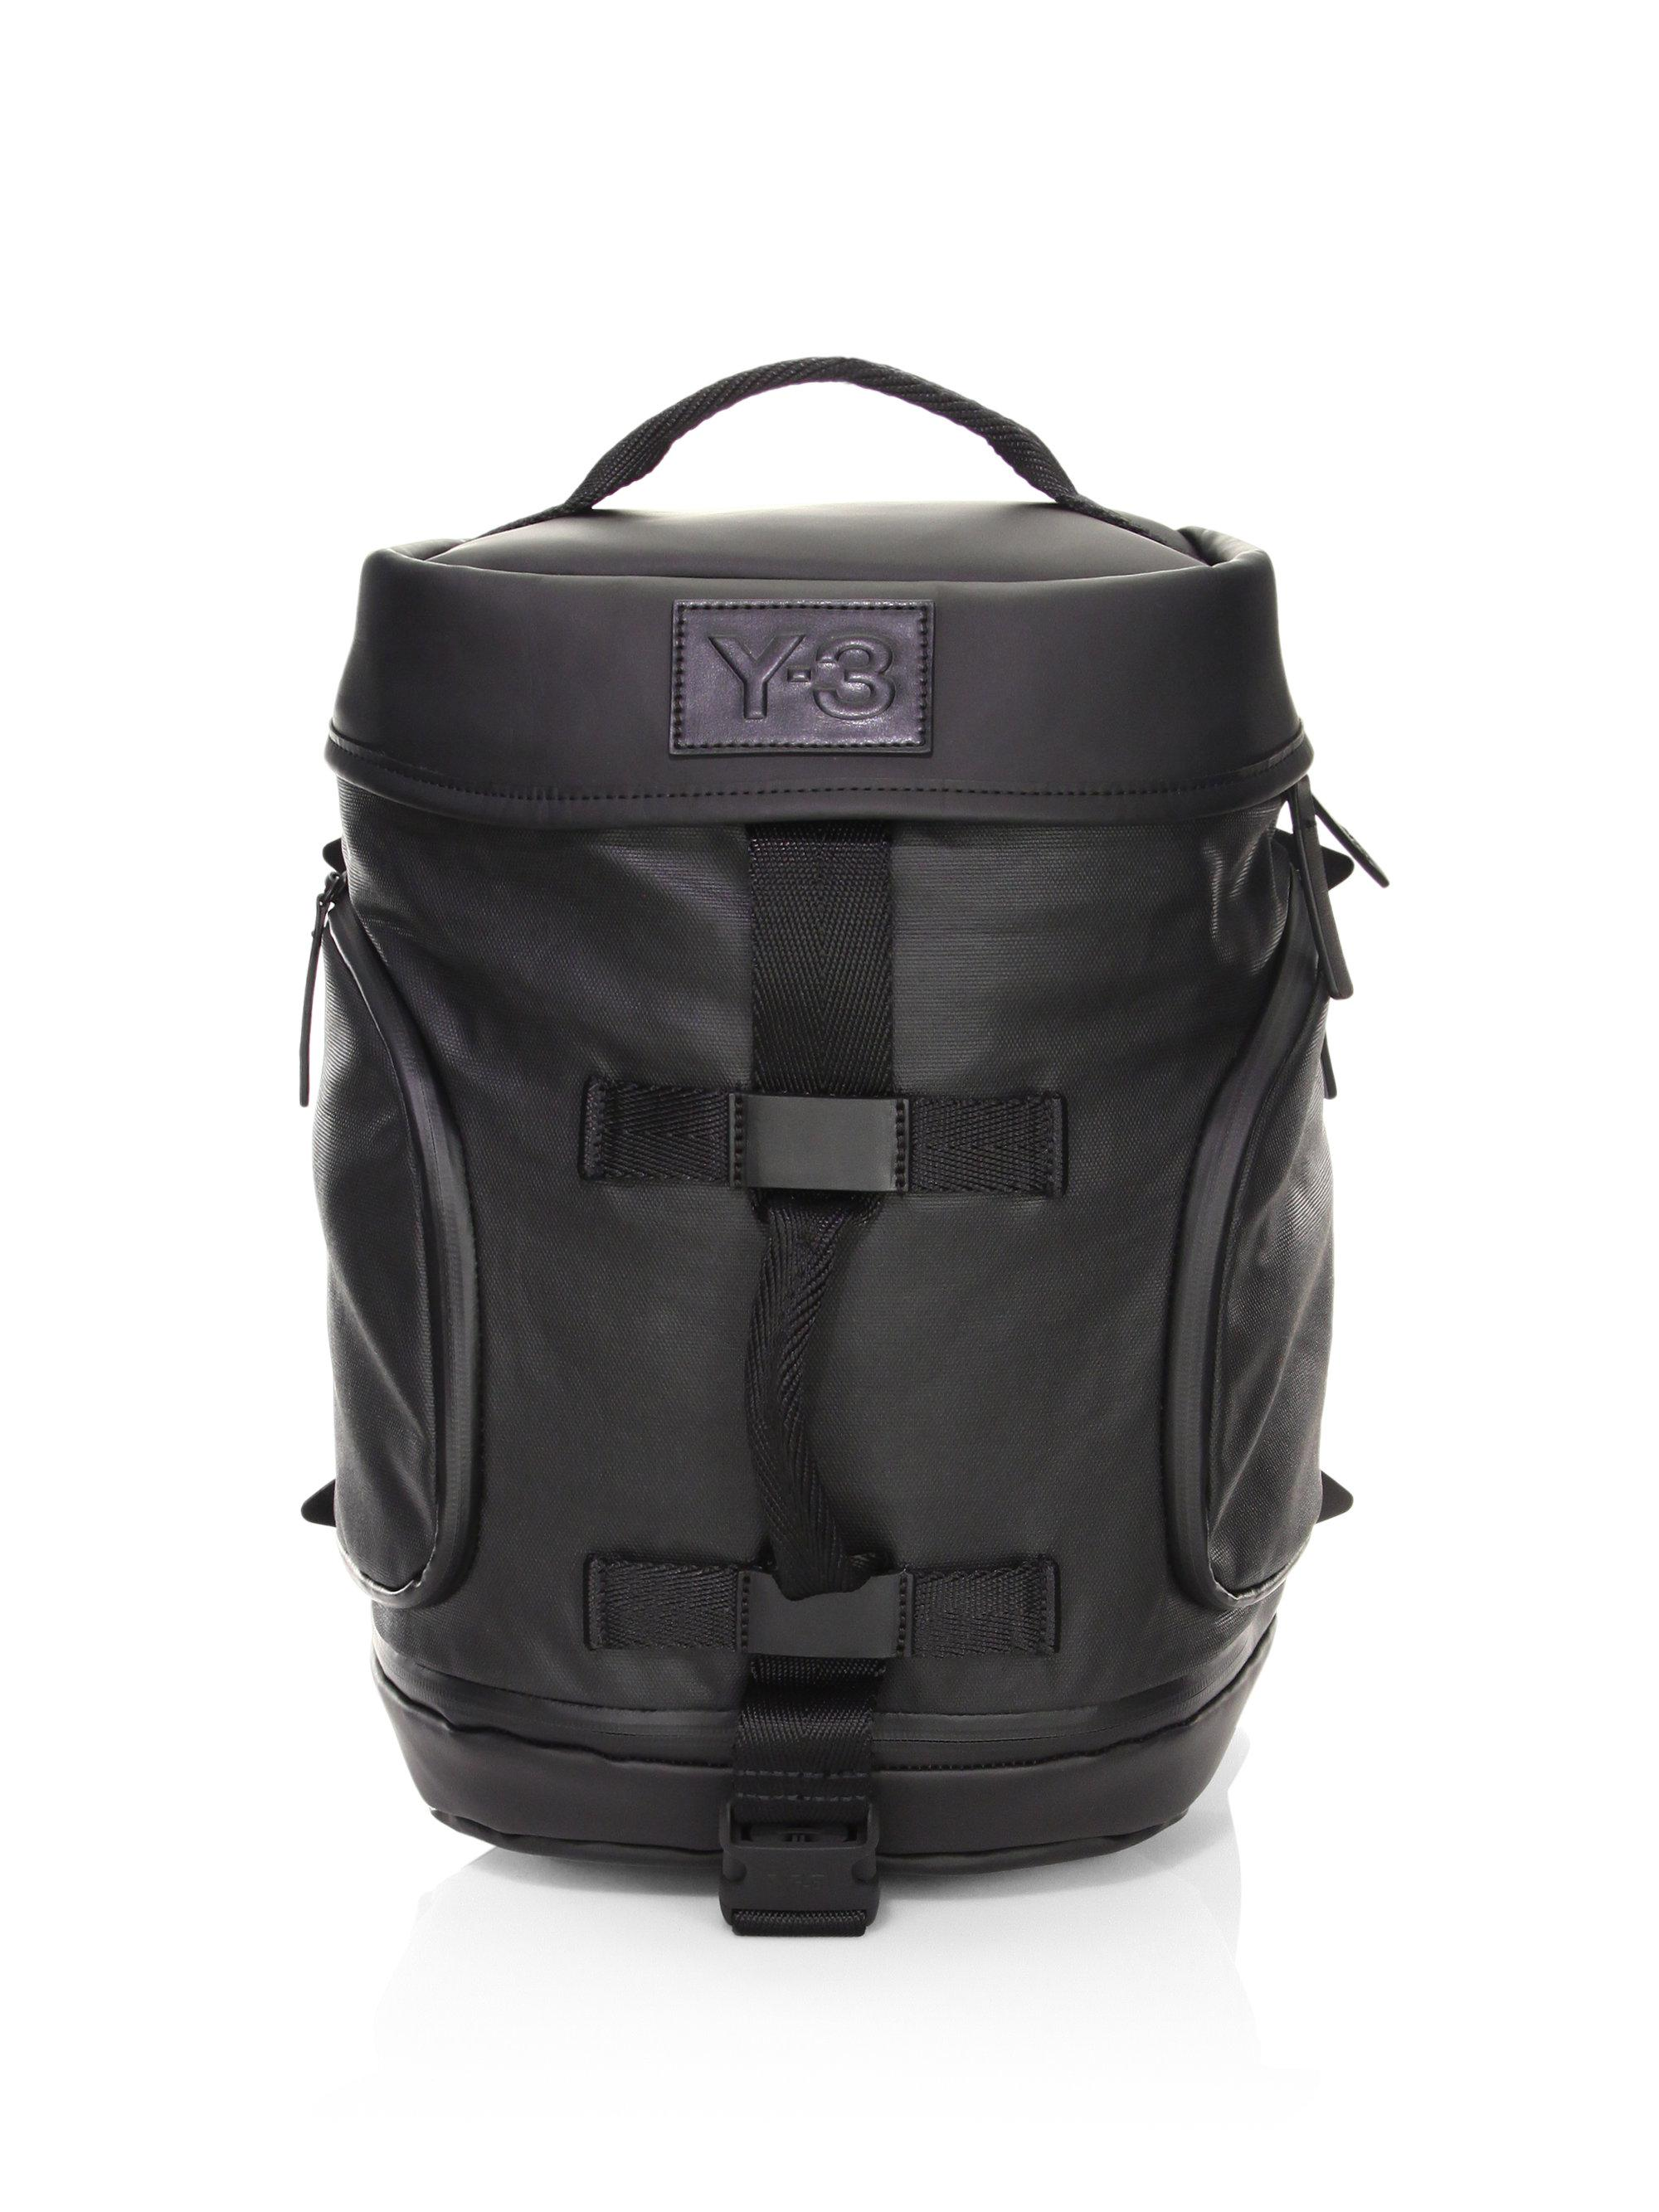 Lyst - Y-3 Icon Small Backpack in Black for Men 9f95479df1343